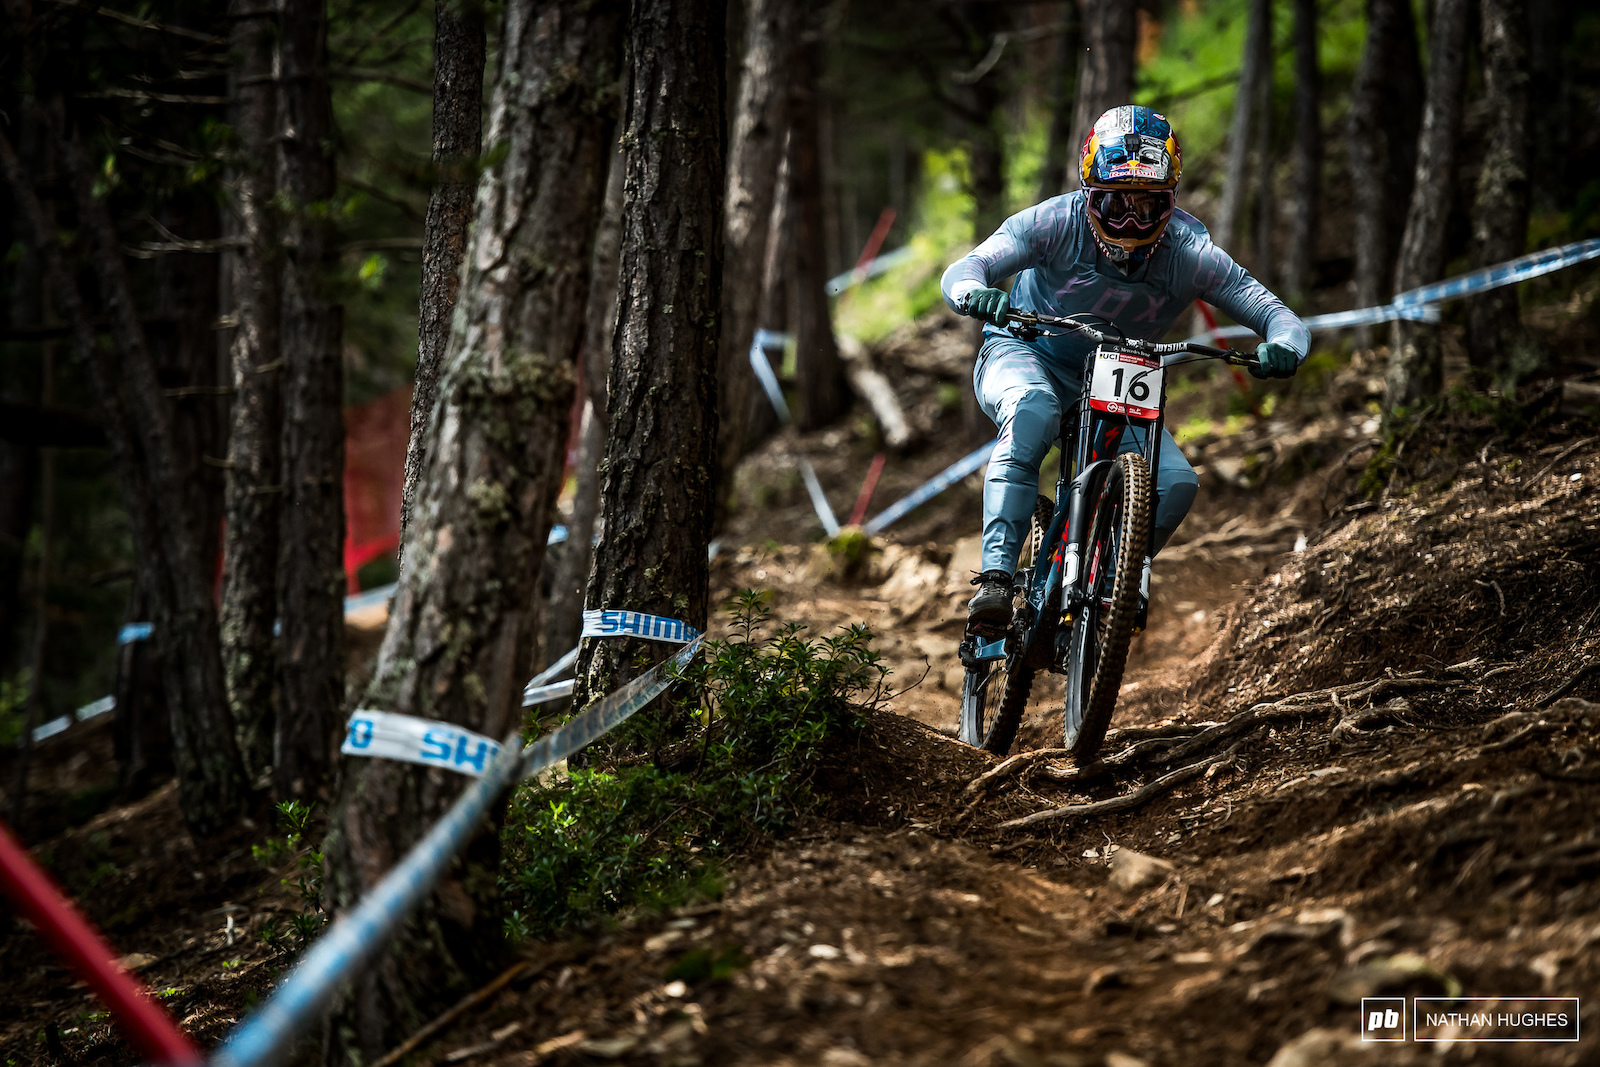 The 2015 Vallnord World Champ attacking his first lap of the day.